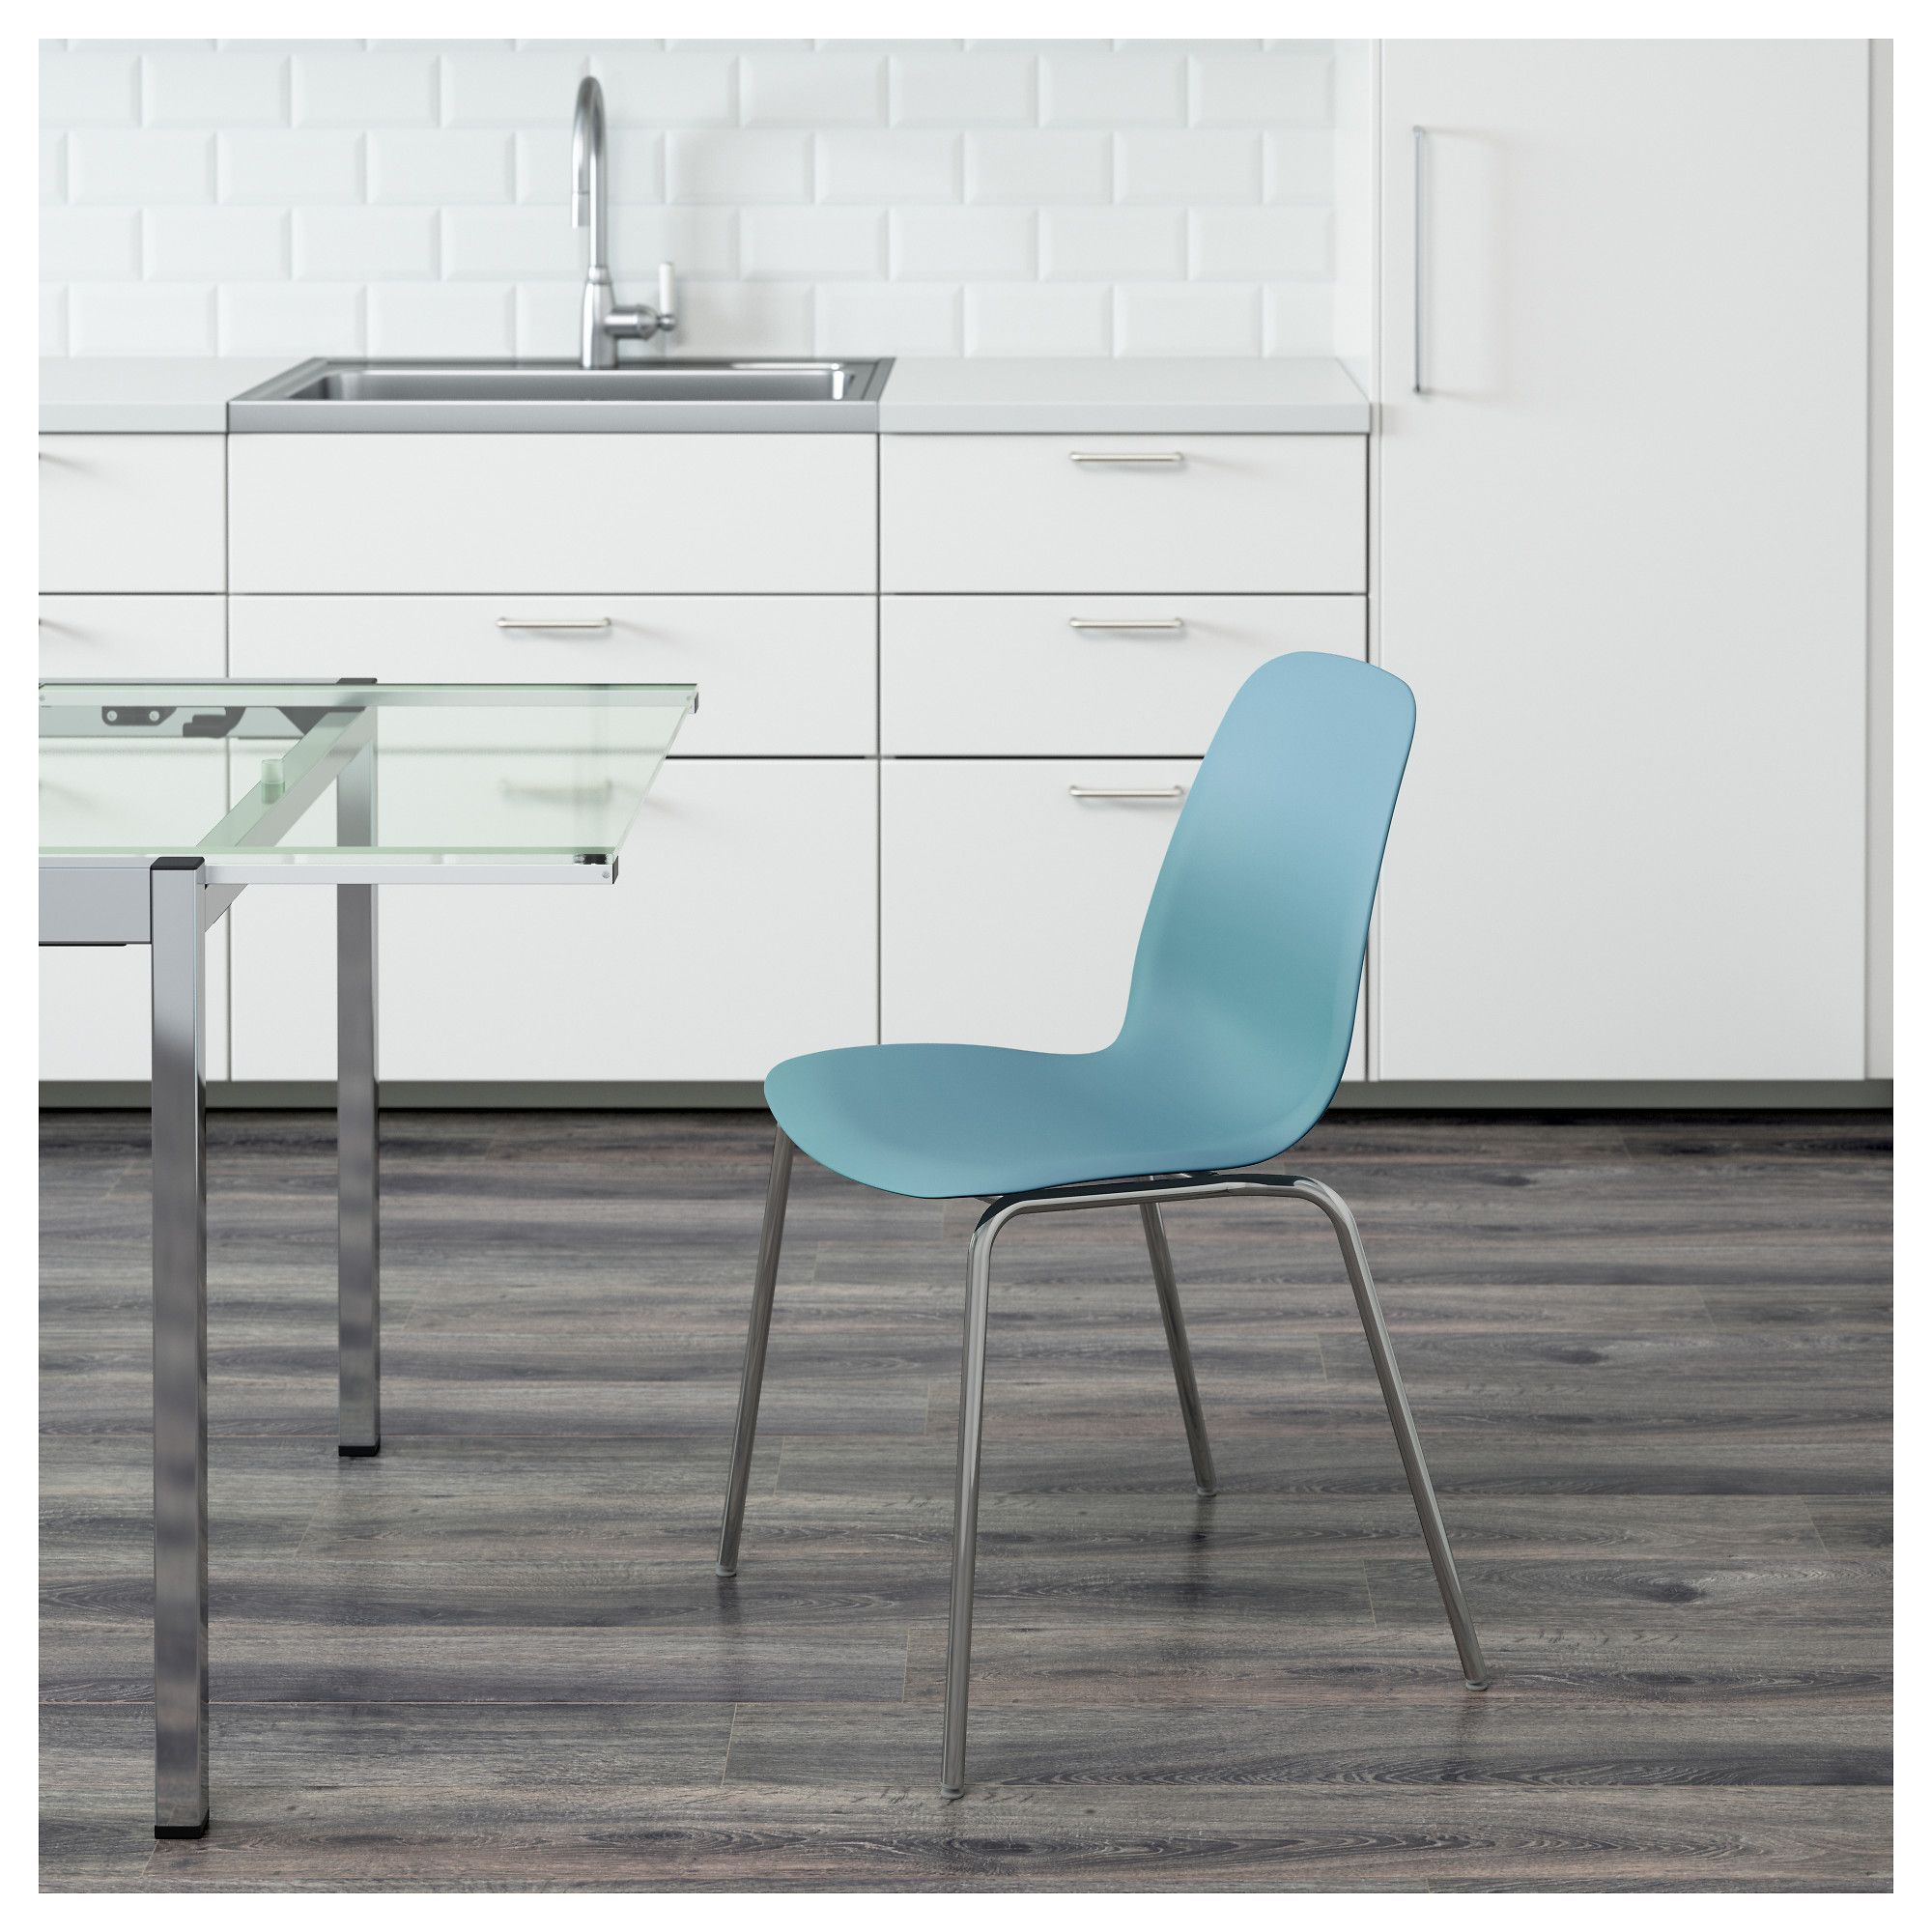 teal kitchen chairs LEIFARNE Chair Light blue broringe chrome plated Teal KitchenKitchen